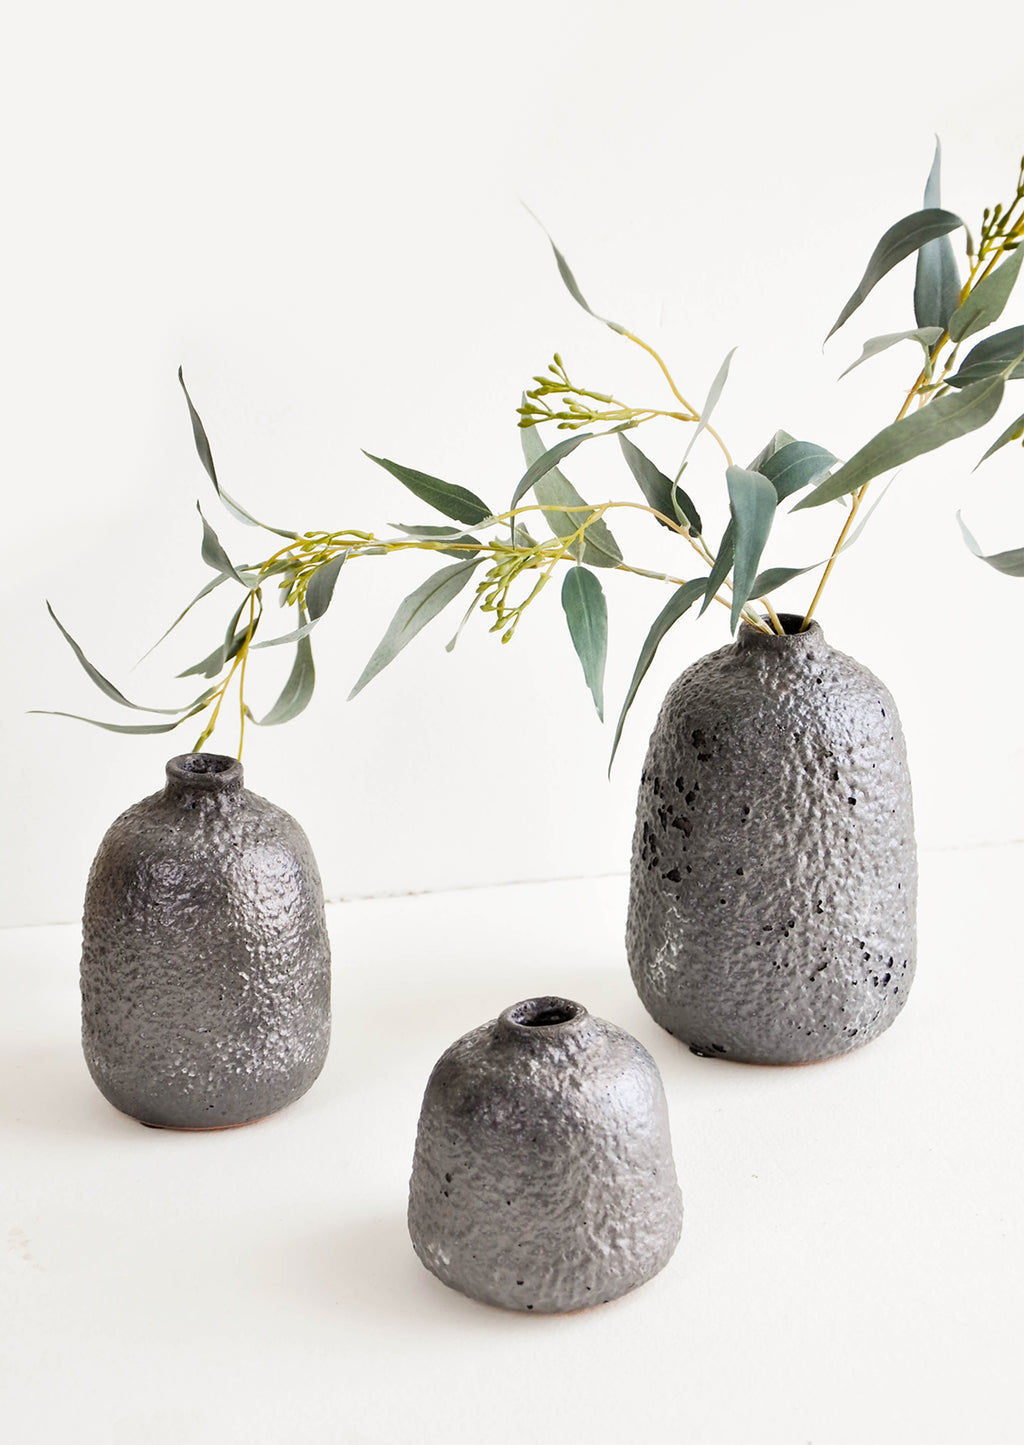 2: Group shot of heavily textured ceramic bud vases in dark metallic grey, styled with eucalyptus stem - LEIF